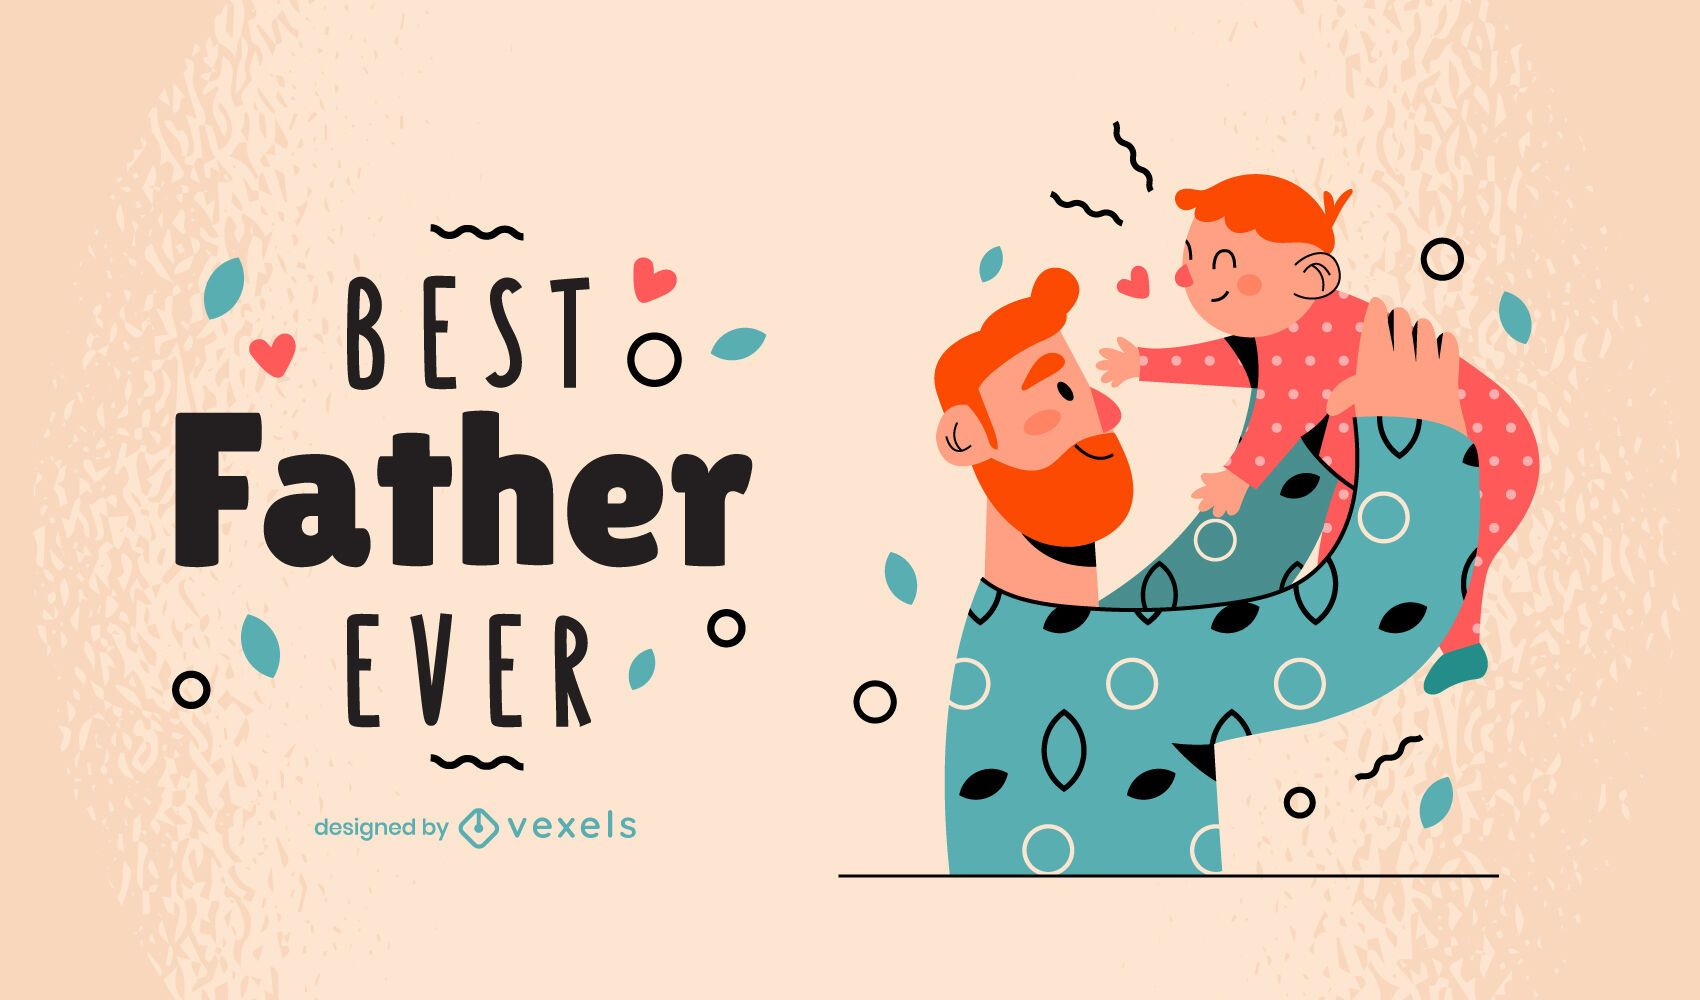 Best father ever family illustration